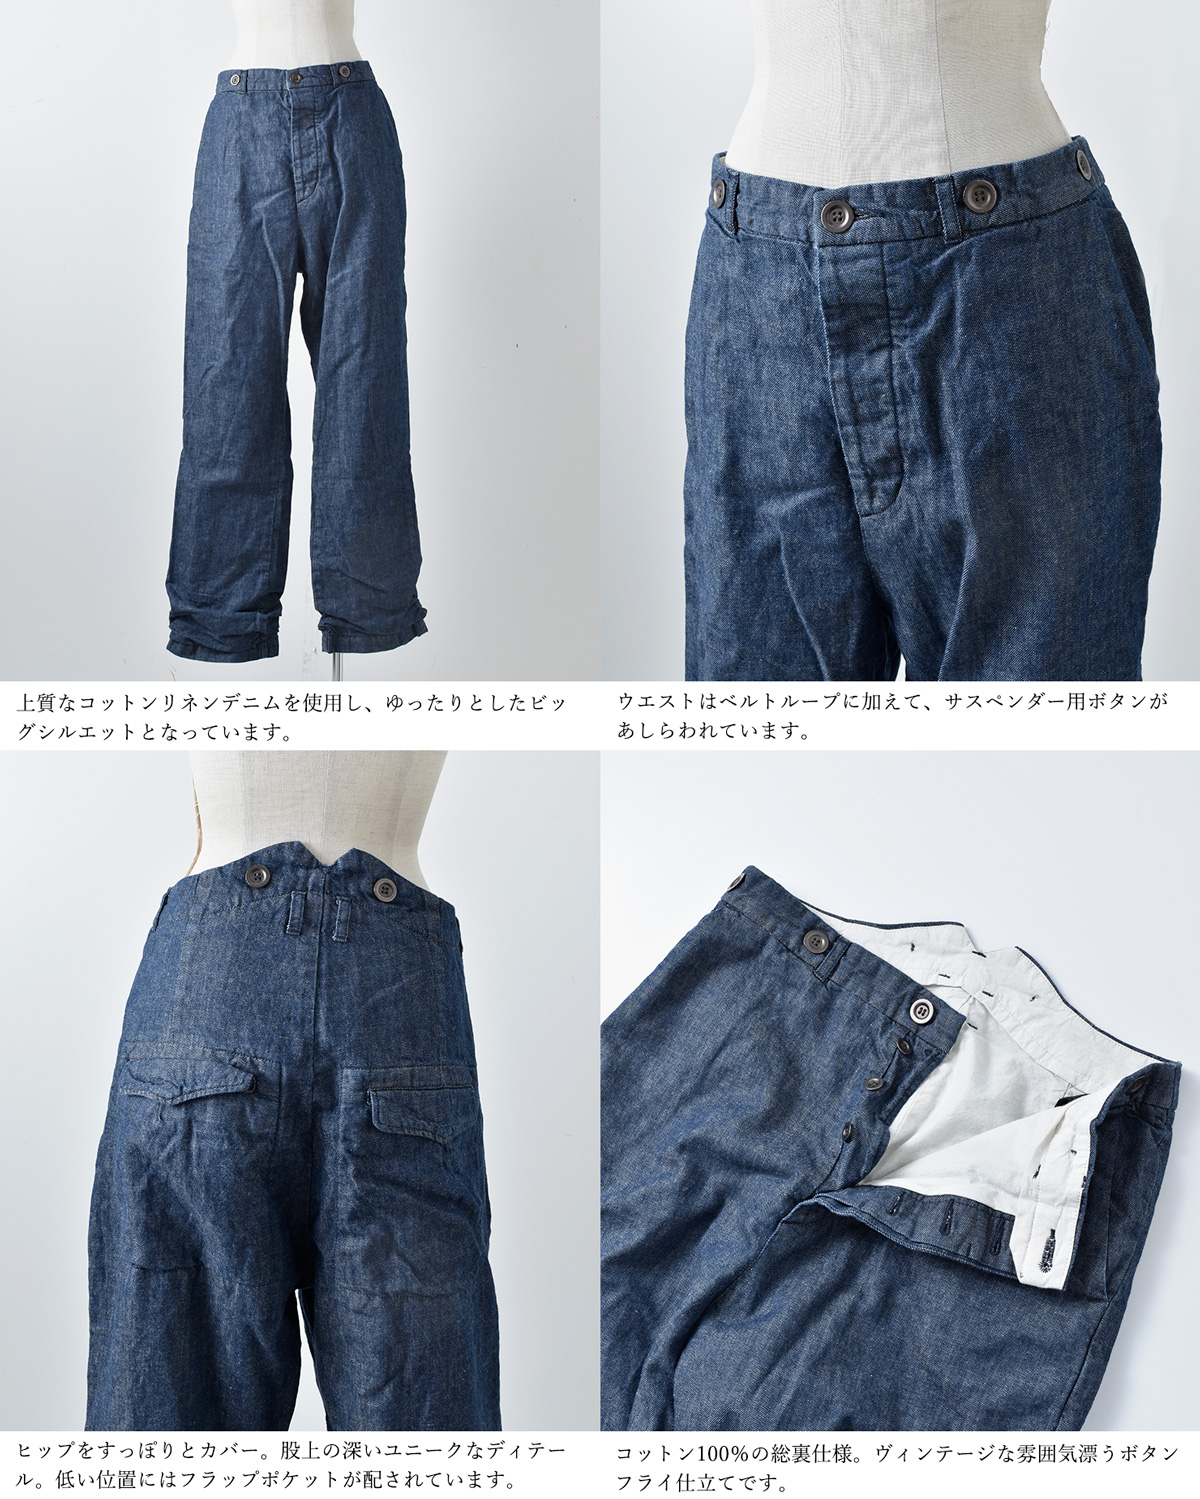 Manufactures&Co.(マニュファクチャーズアンドコー)デニムワーカートラウザーズパンツ workerousers